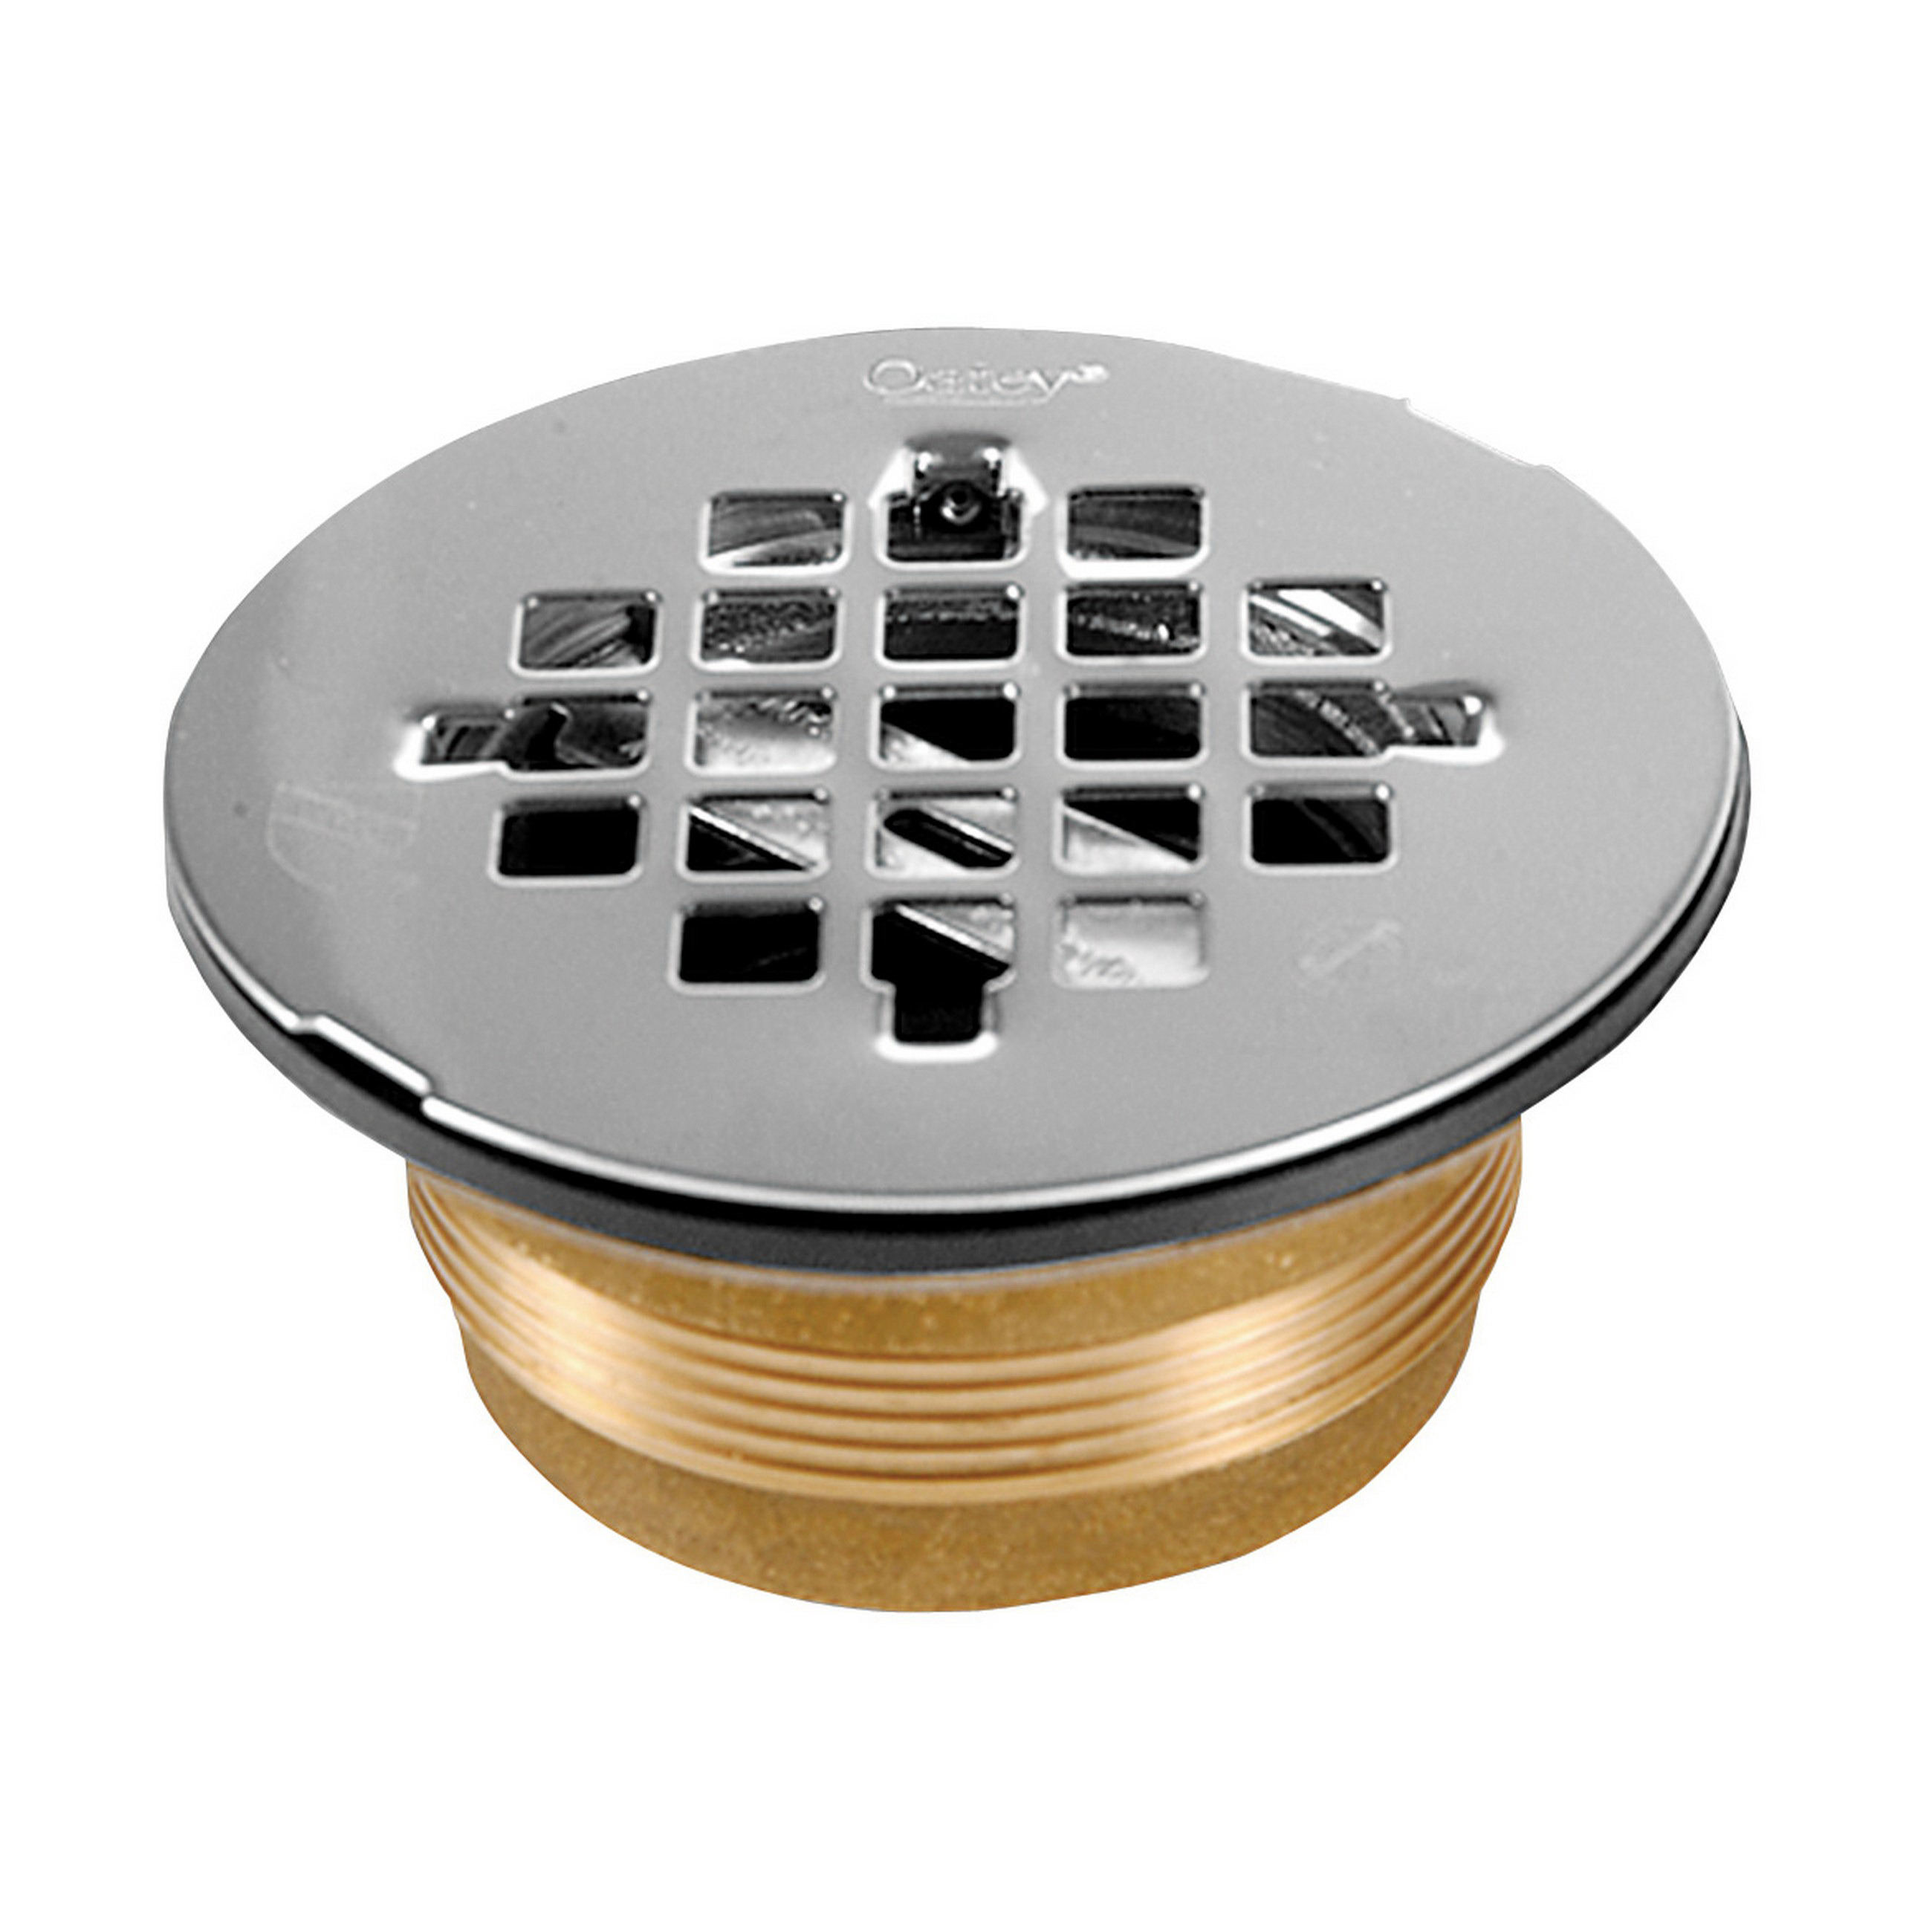 Oatey® 42150 140 No Caulk Shower Drain With Stainless Steel Strainer, 2 in, 4-1/4 in Stainless Steel Grid, Cast Brass Drain, Import